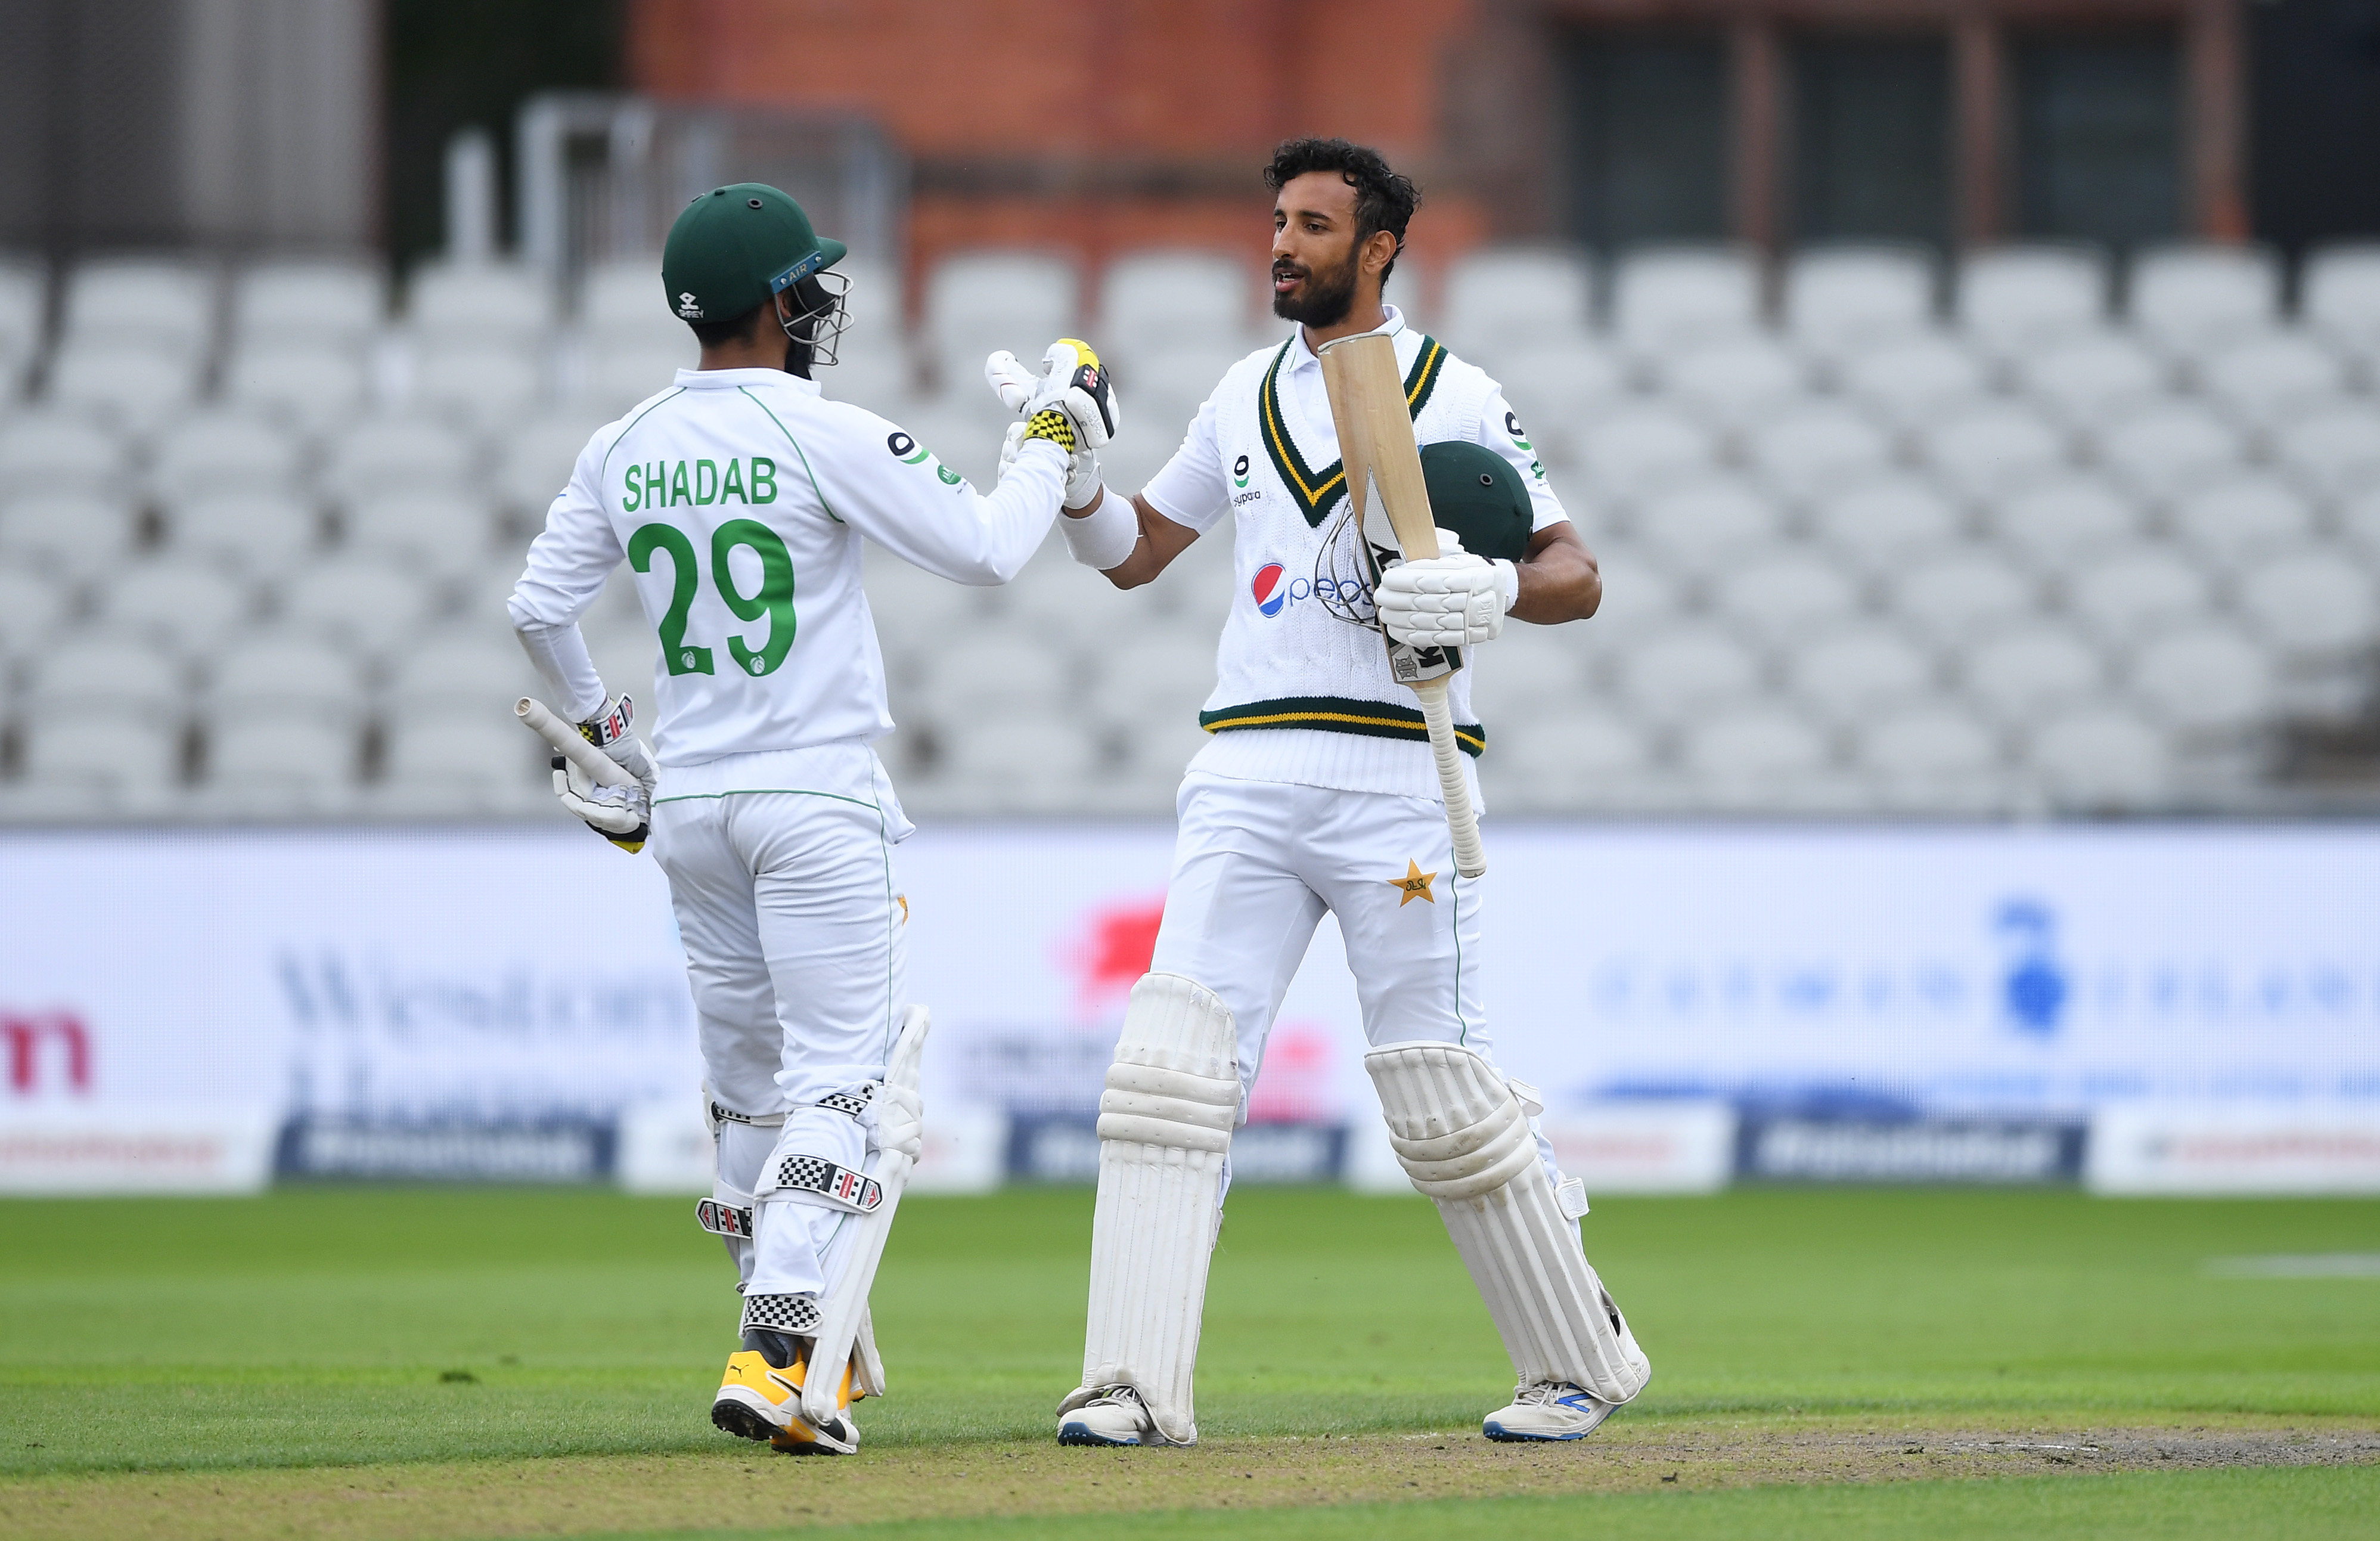 Masood tons up before seamers skittle England top order